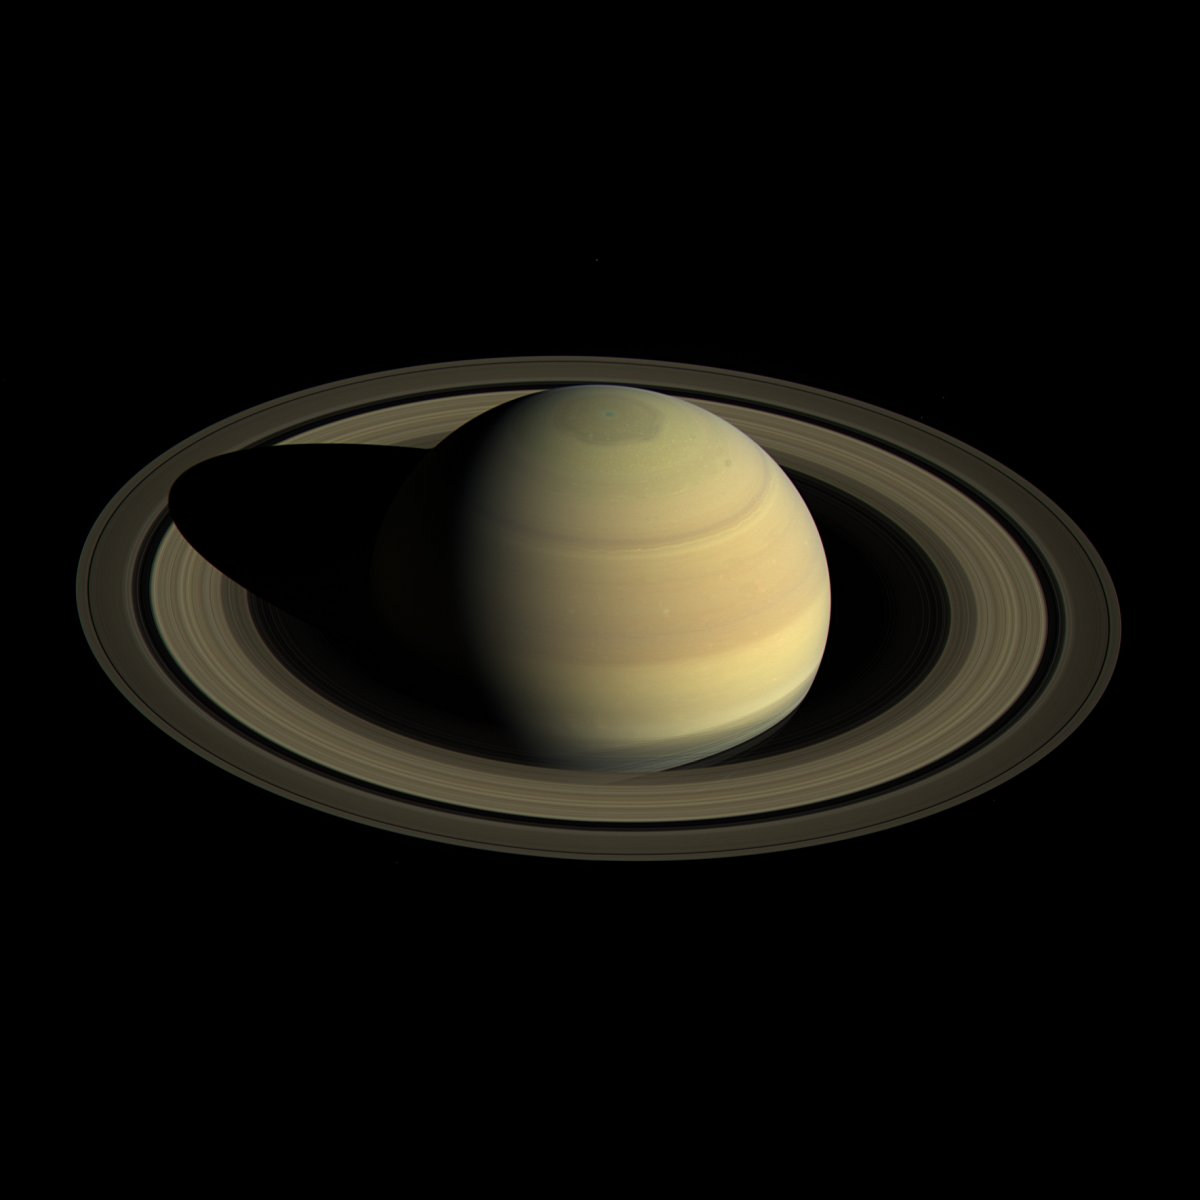 Public Domain: https://commons.wikimedia.org/wiki/File:8423_20181_1saturn2016.jpg